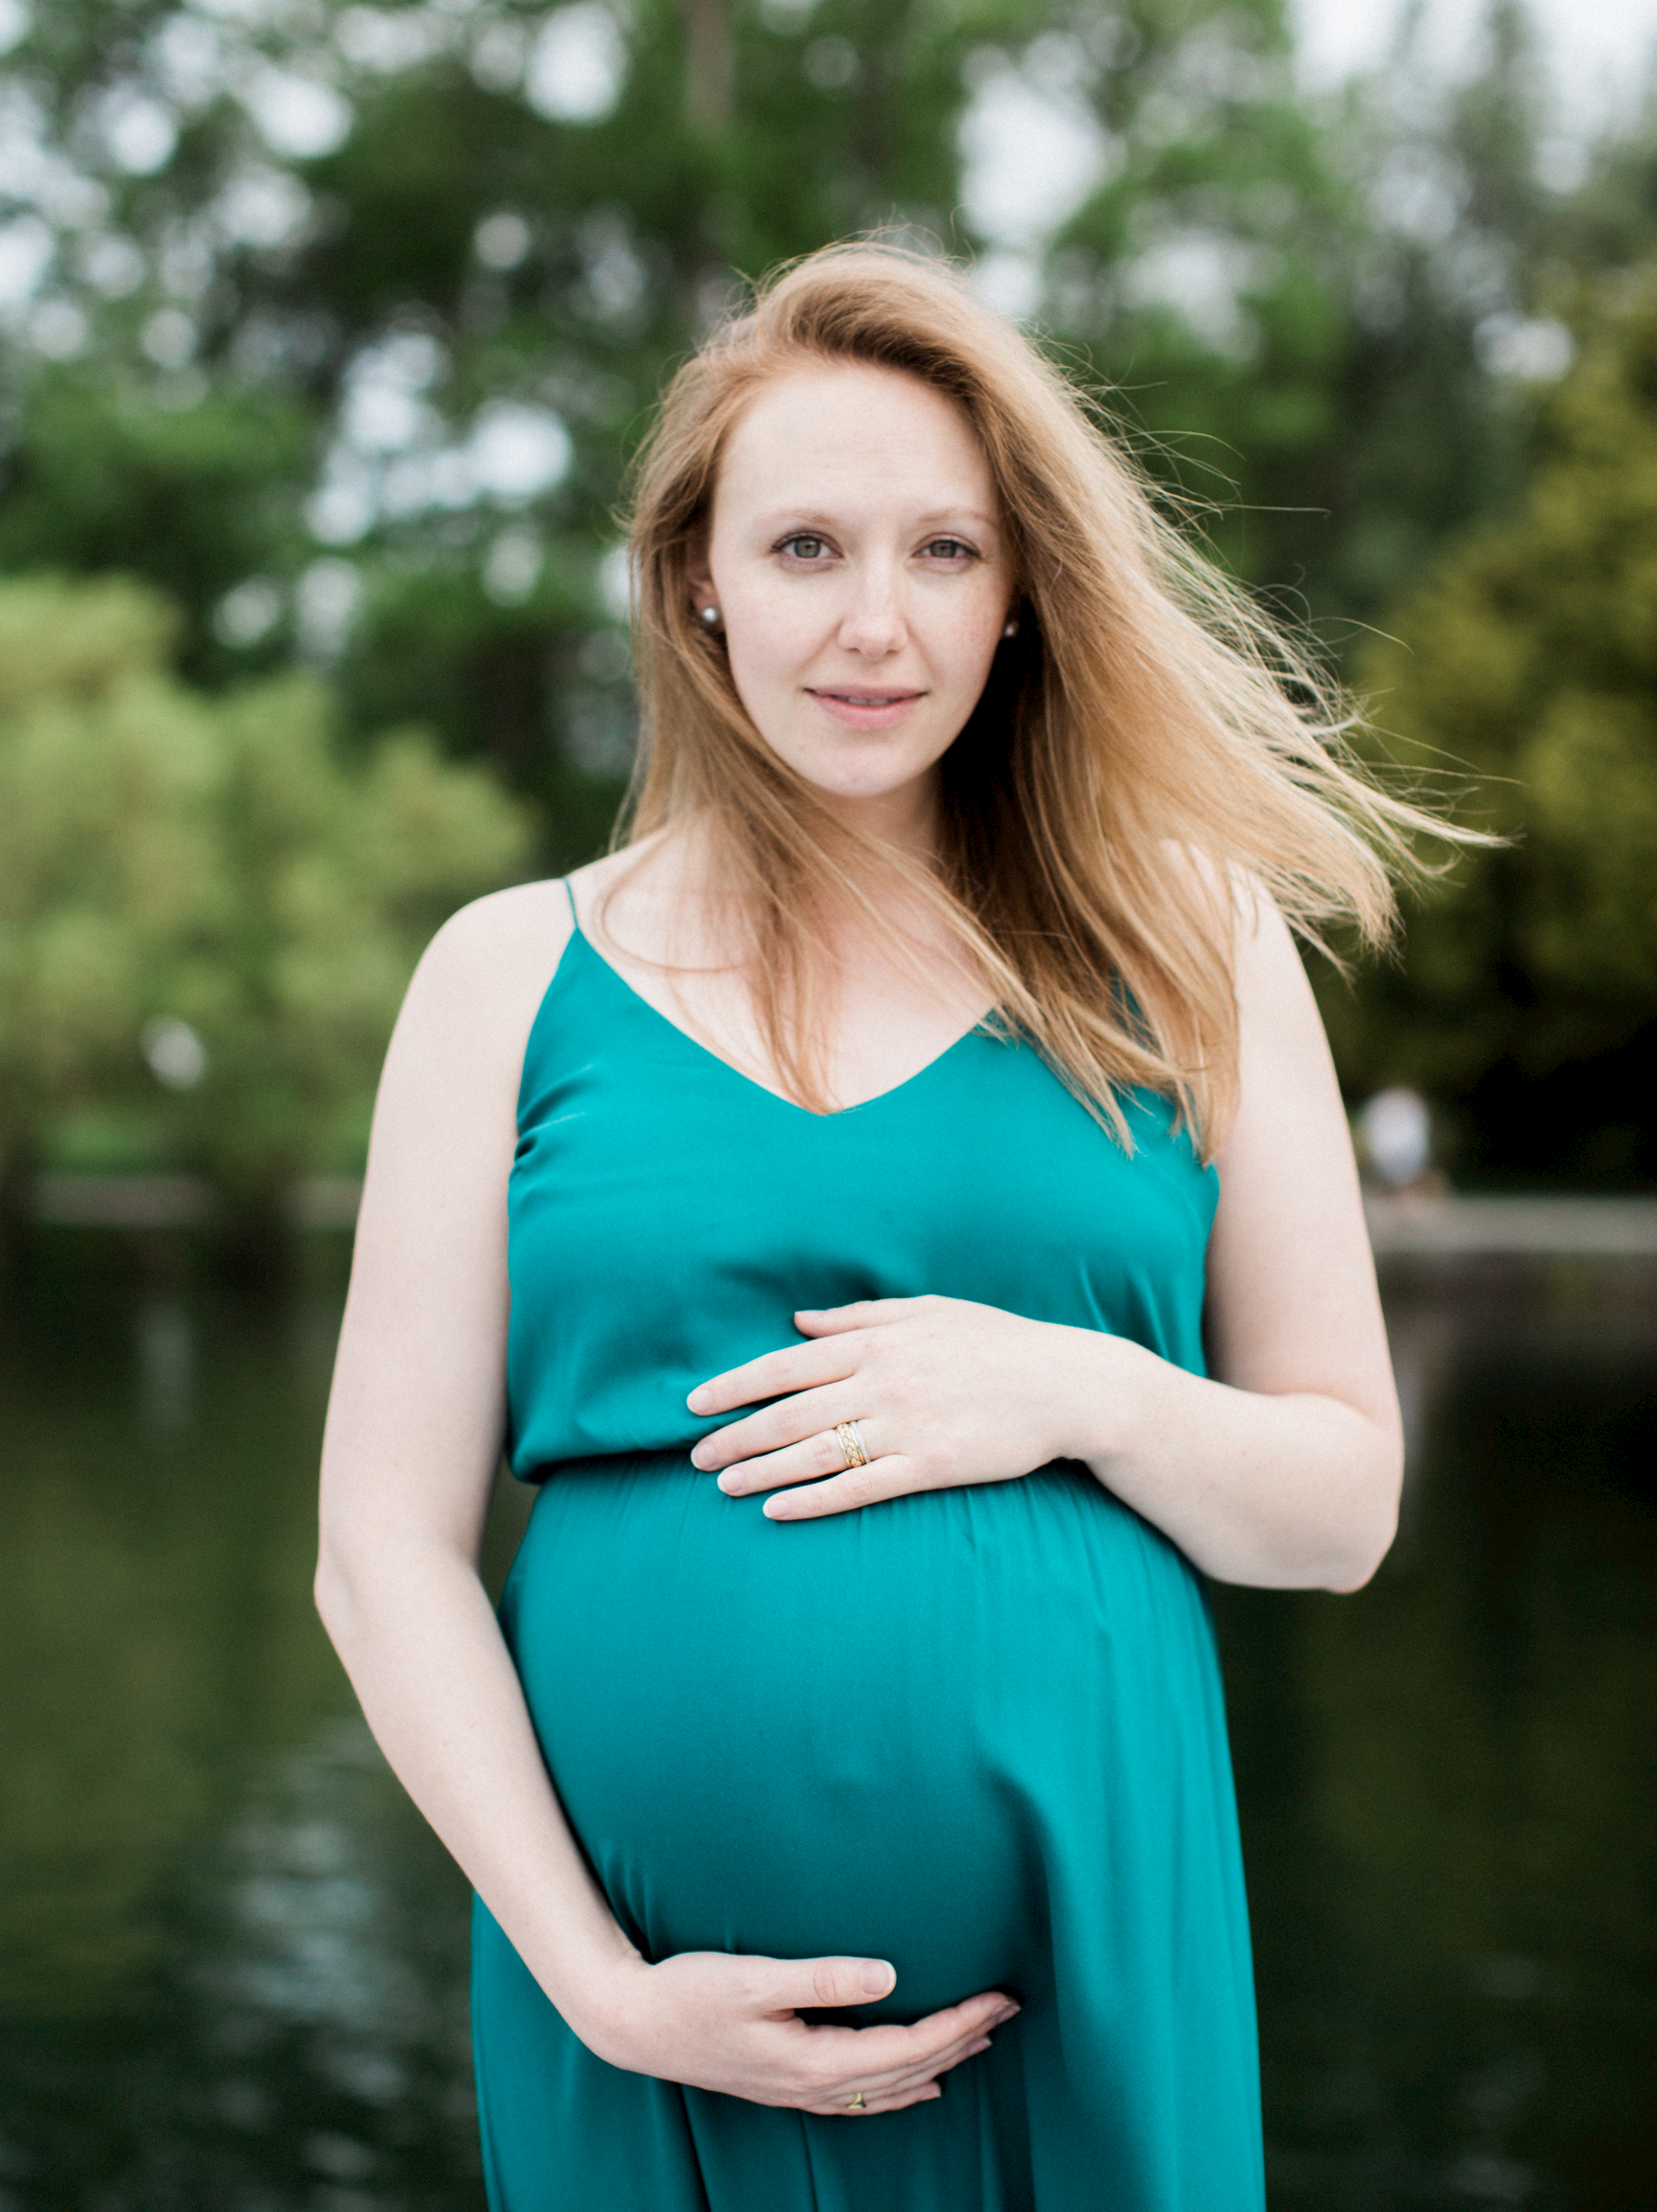 green lake seattle washington maternity portraits 9